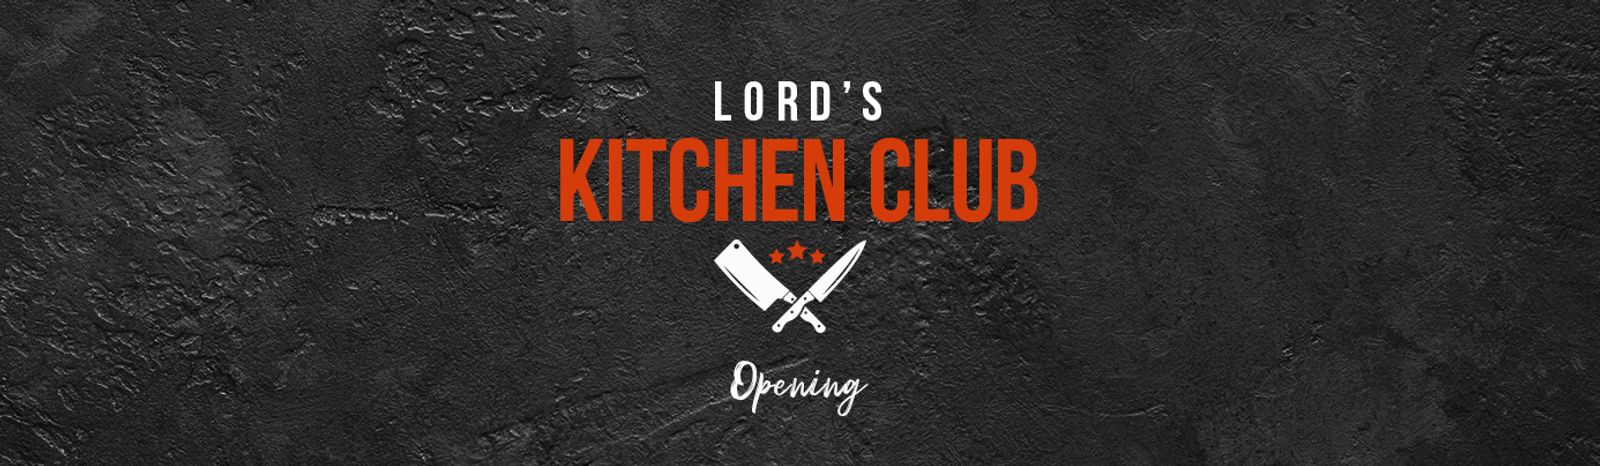 Lord's Kitchen Club - Opening